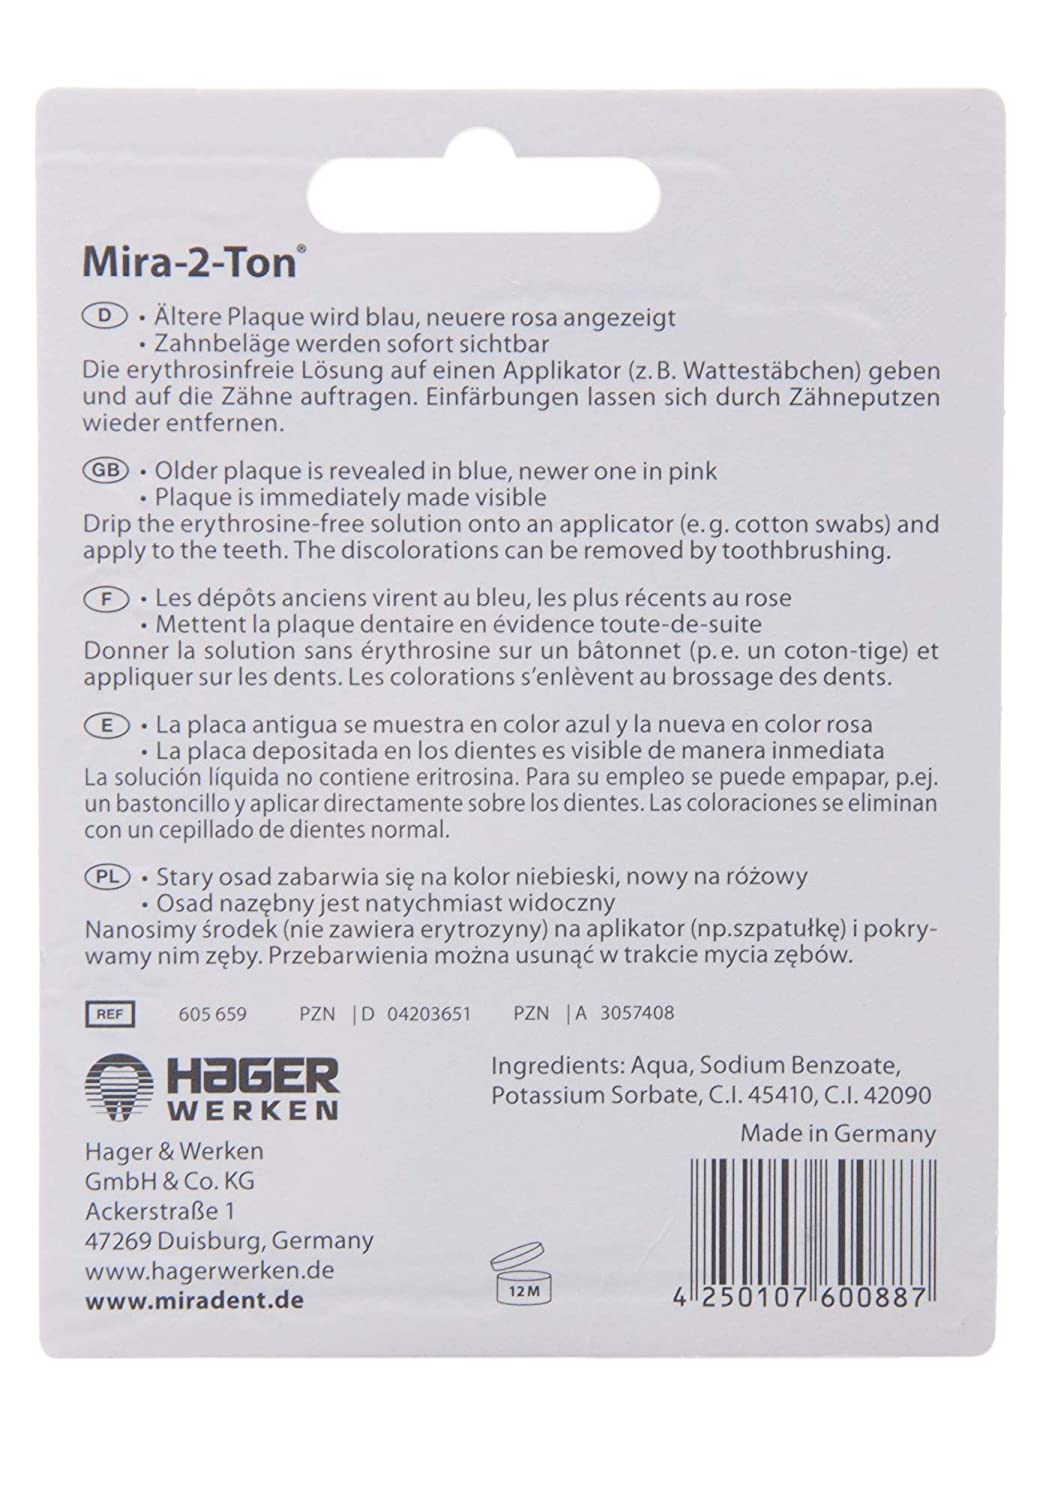 Amazon.com: MIRADENT Plaquetest Lösung Mira-2-Ton 10ml (1 x 10ml): Health & Personal Care